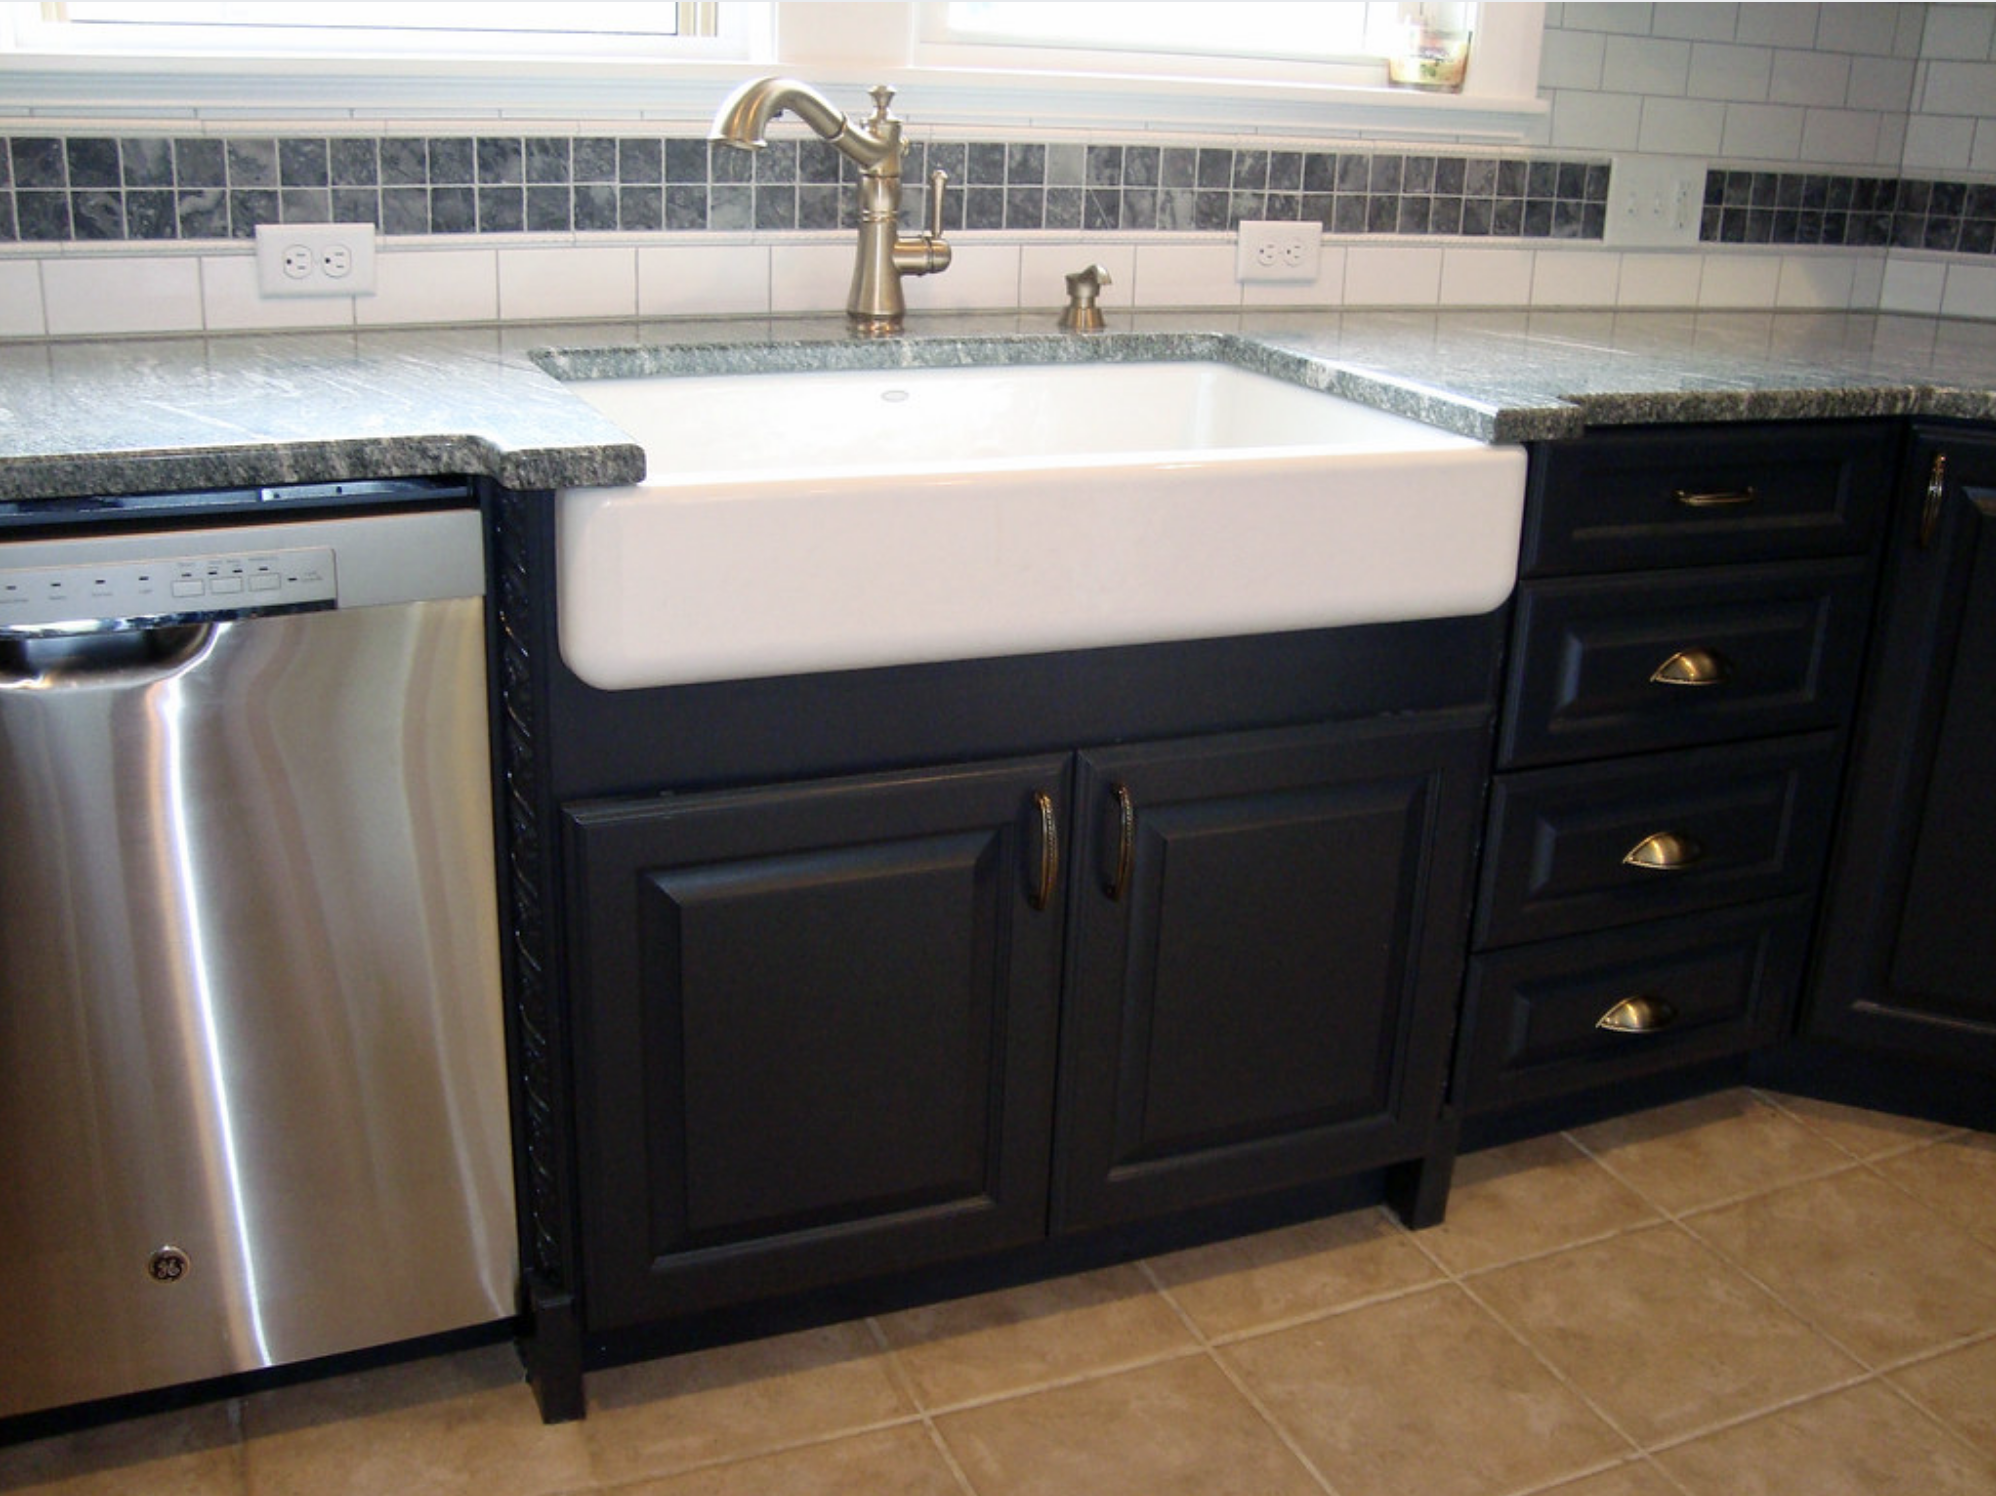 apron sink, in either cast iron or fireclay, installed in a kitchen.